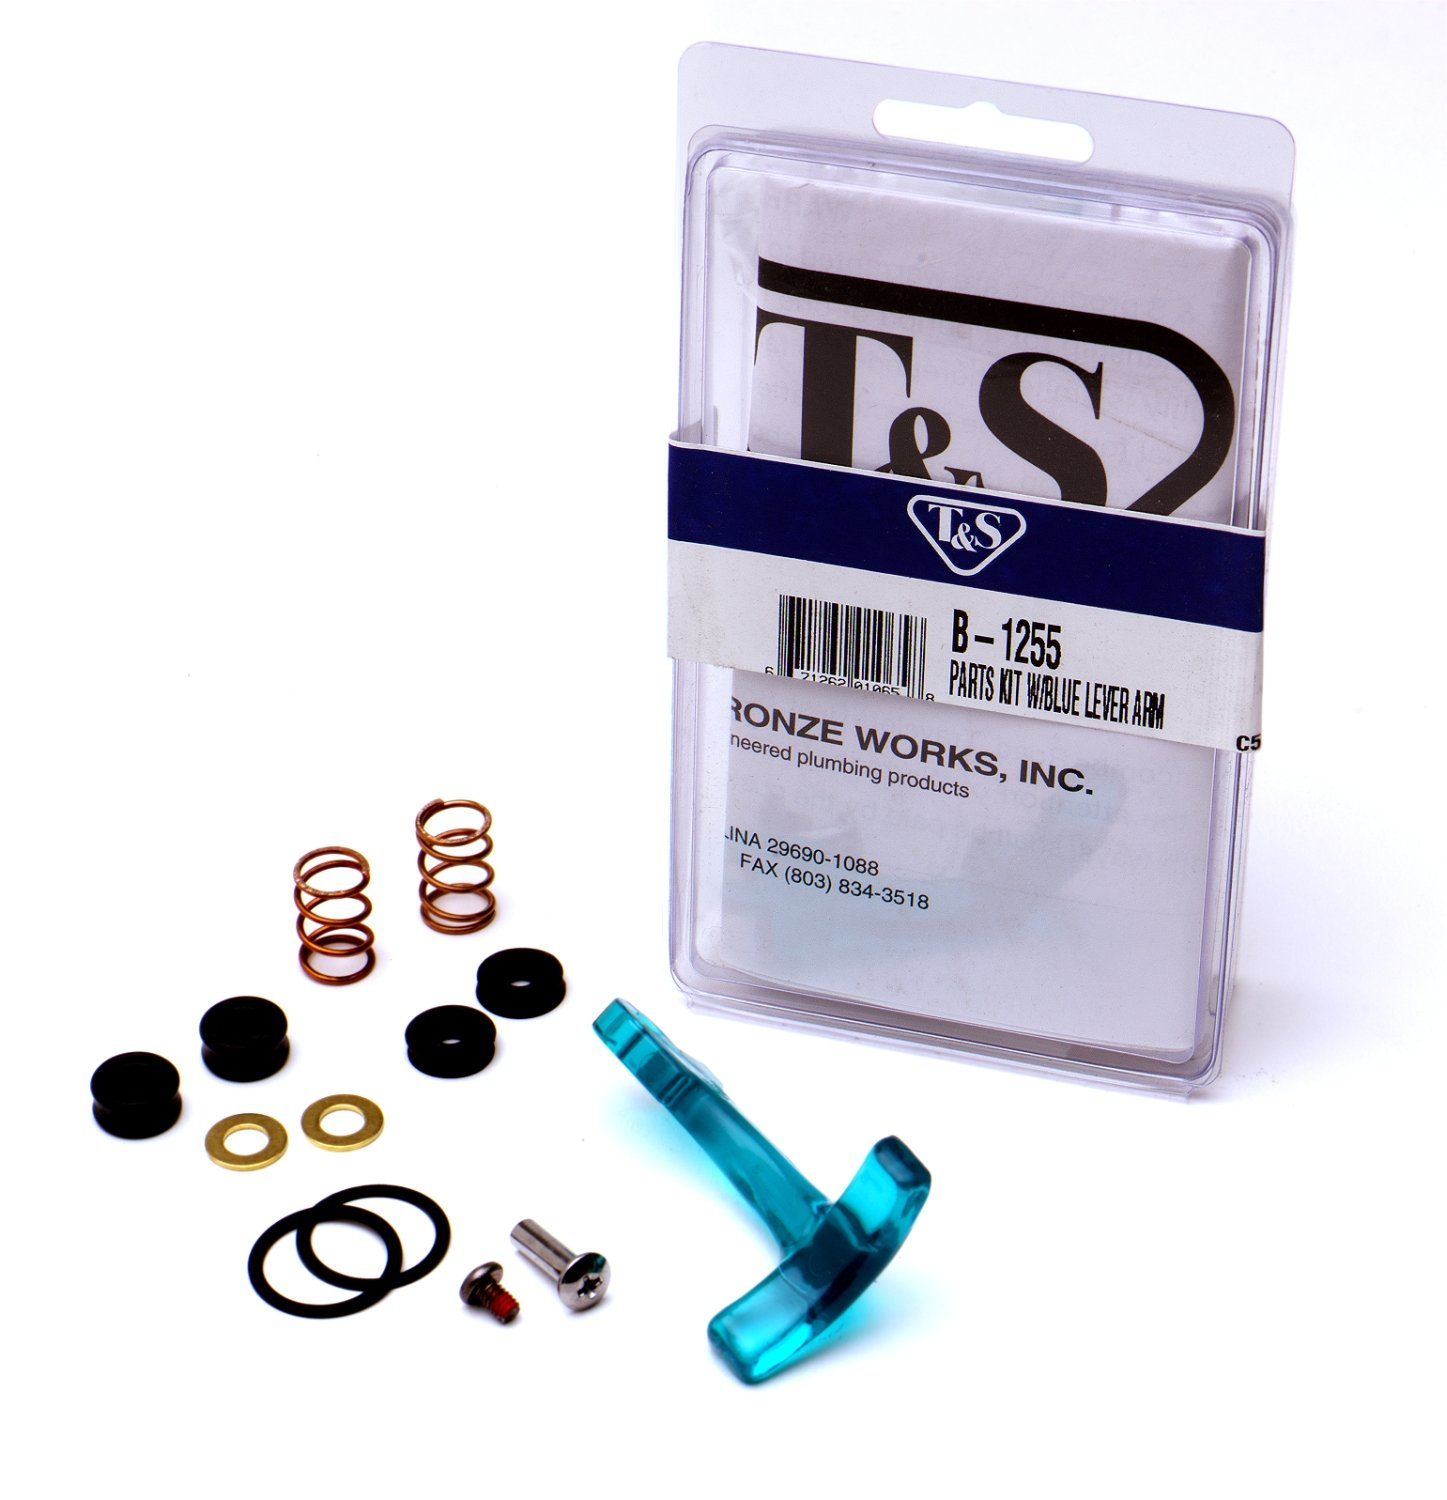 T&S Brass B-1255 Repair Kit for Old-Style Glass Filler